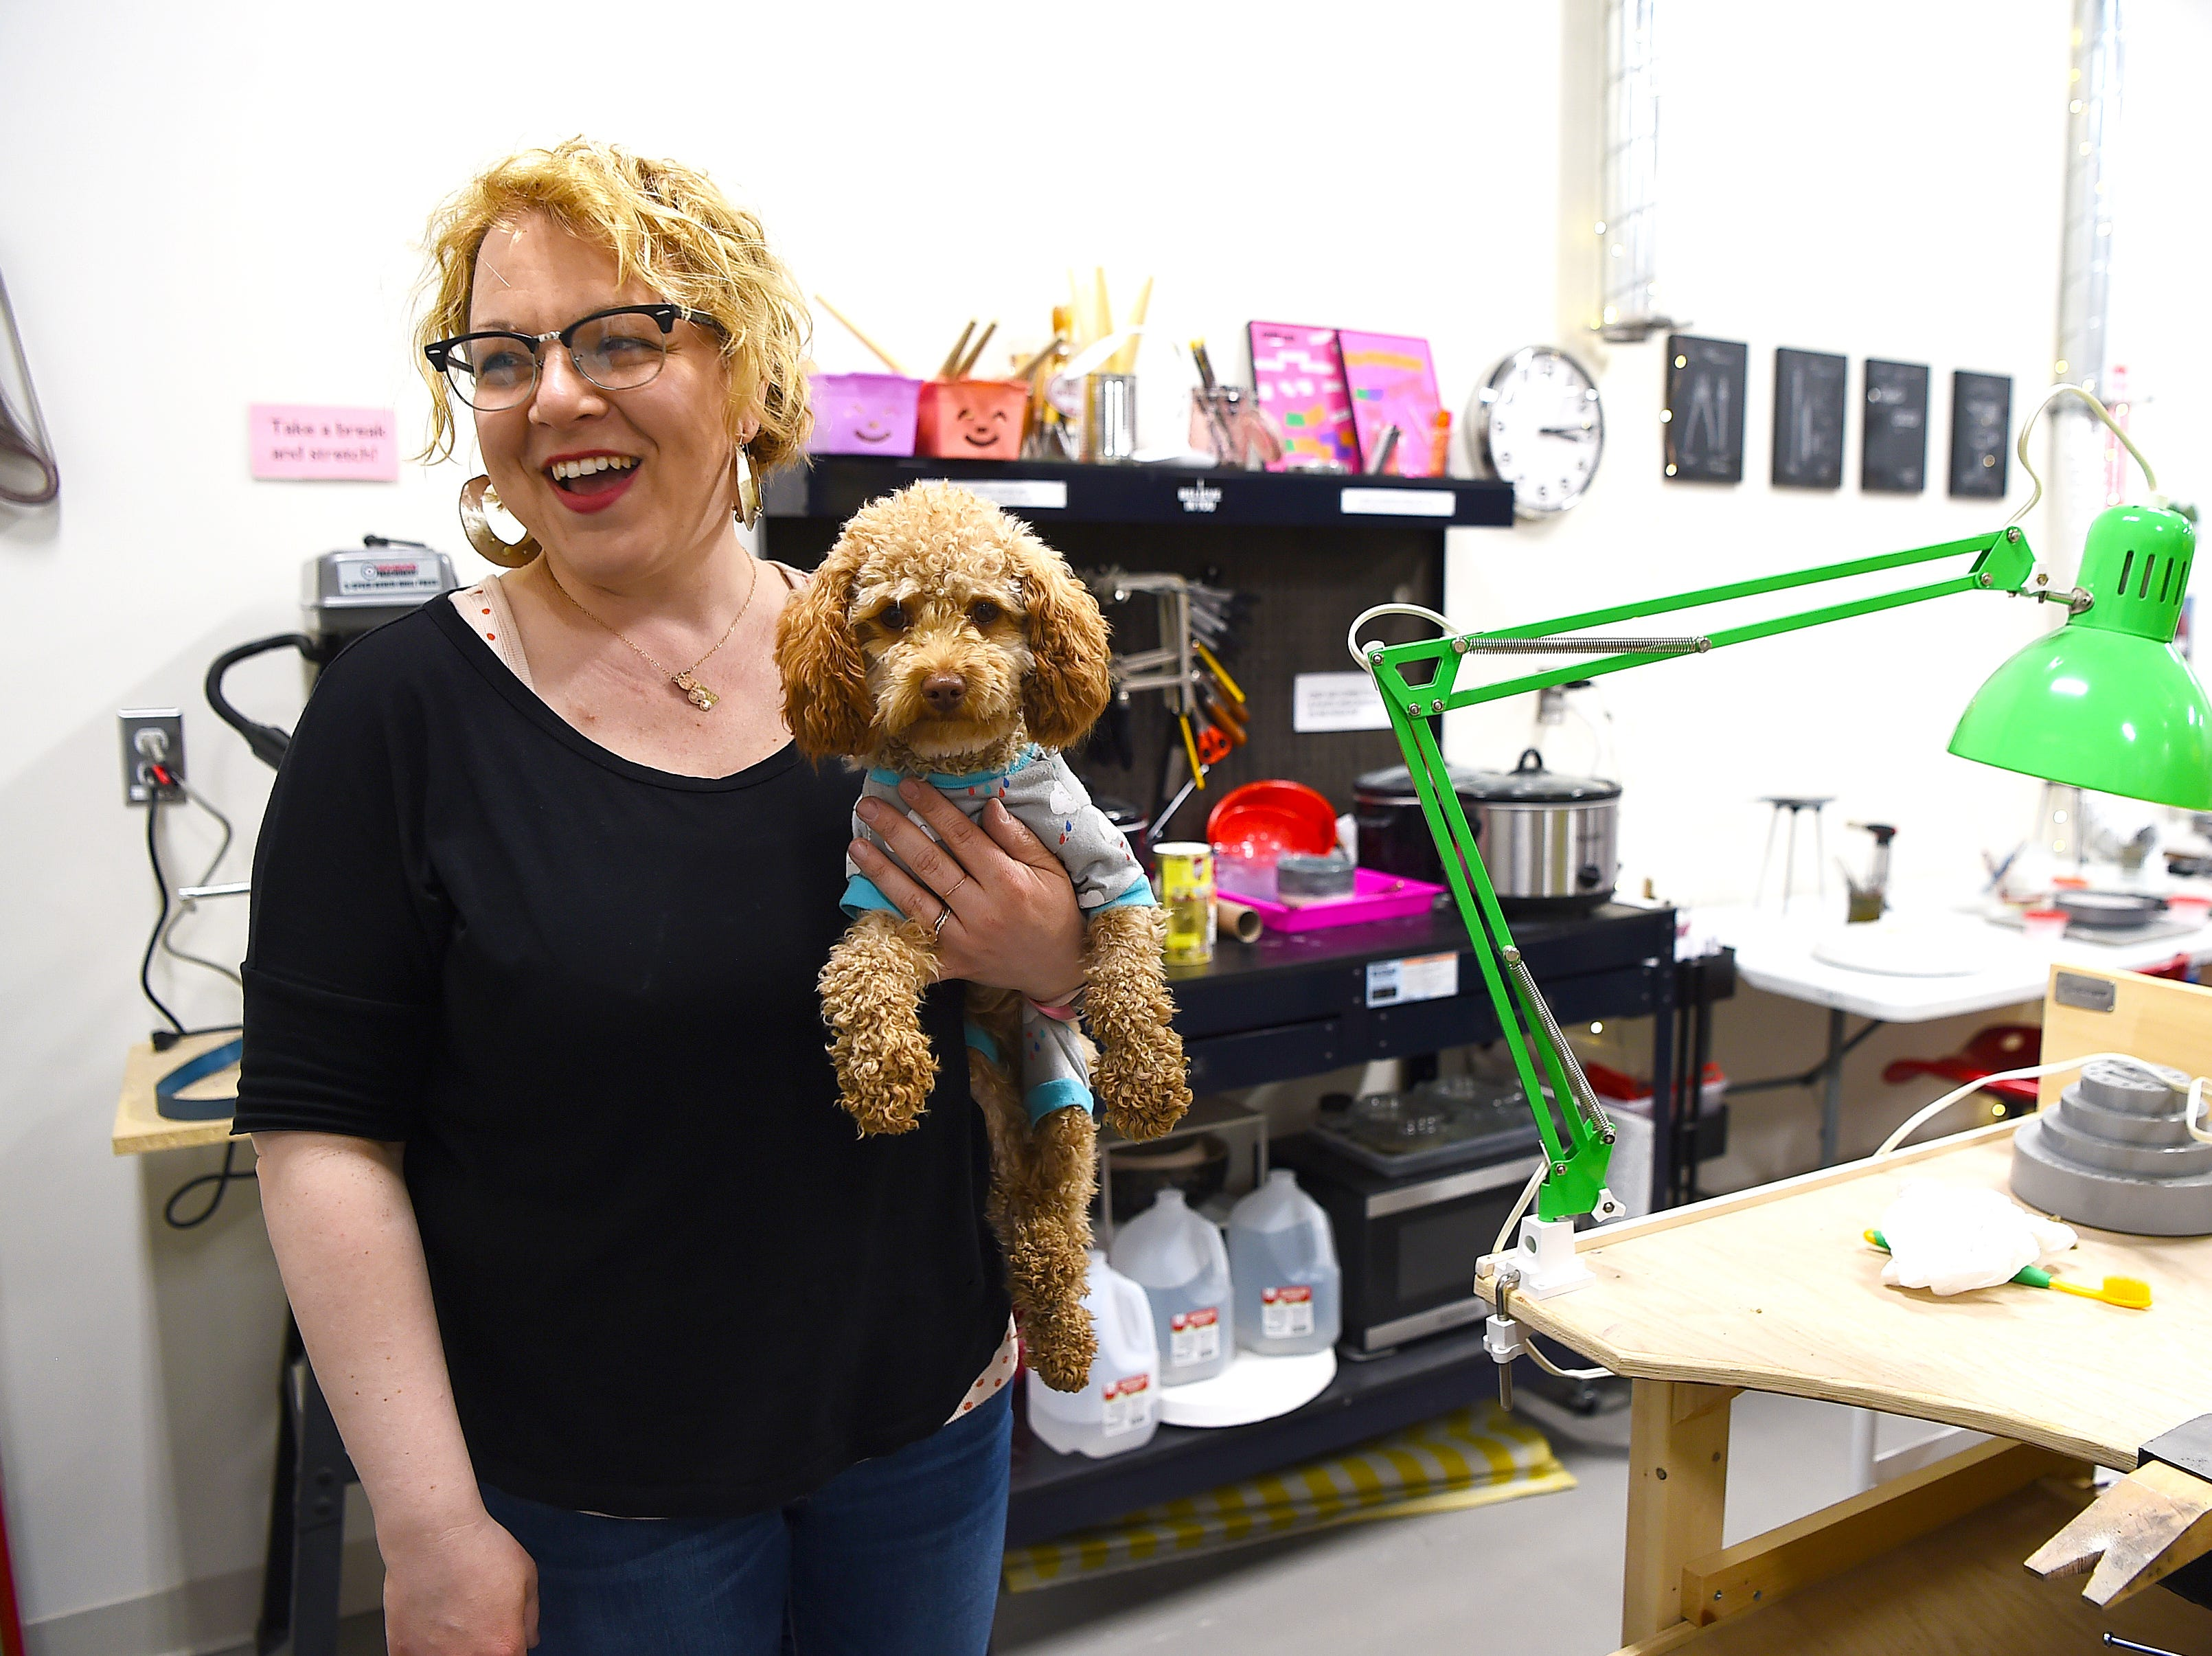 Elaan Greenfield and her dog in The Metal Smithery, her metal arts school in the South Hill Business Campus on Danby Road. Once an industrial space, Artist Alley at South Hill now houses a variety of working artist studios, with more being built to meet the demands of area artists.